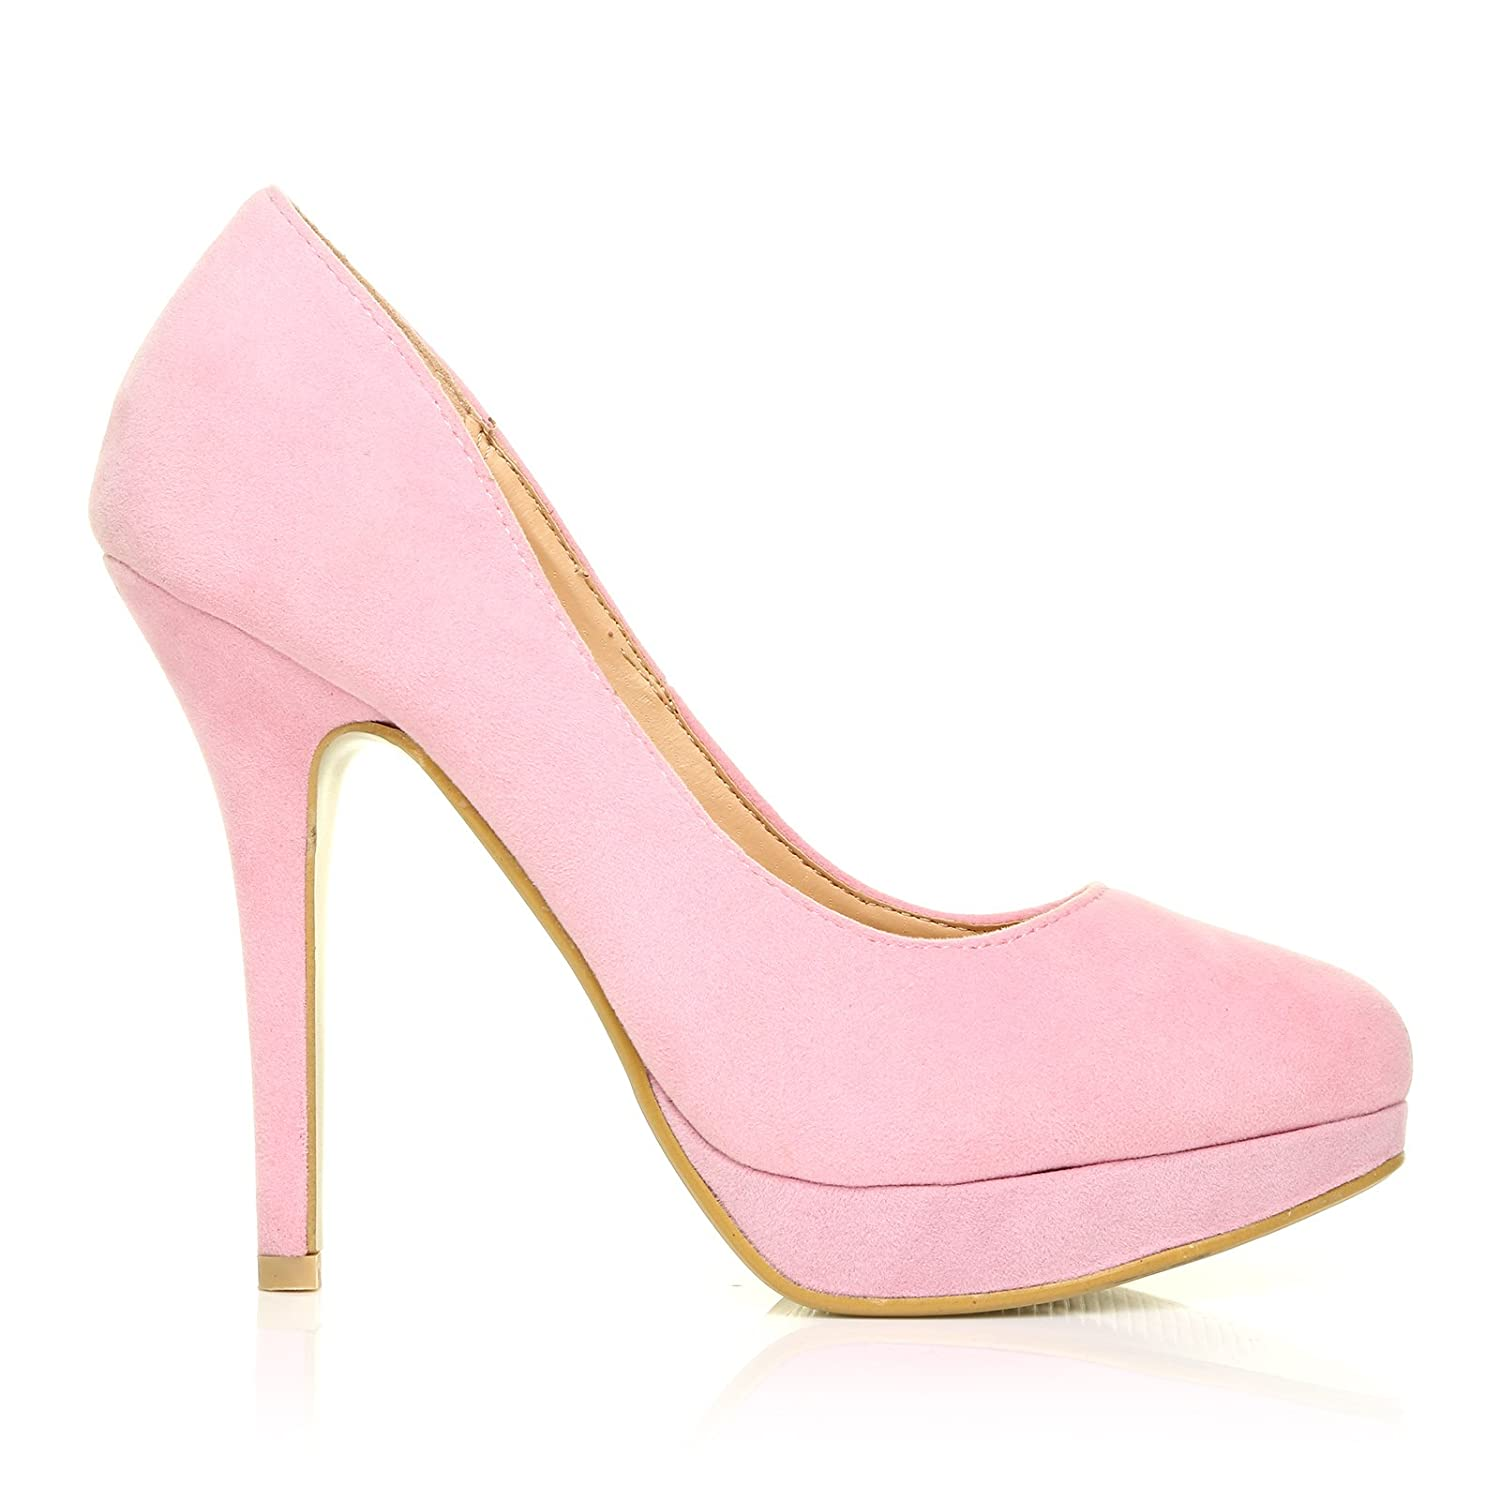 Heel Pink Platform Baby Stiletto High Court Eve Shoes Faux Suede TwOZXlPkiu